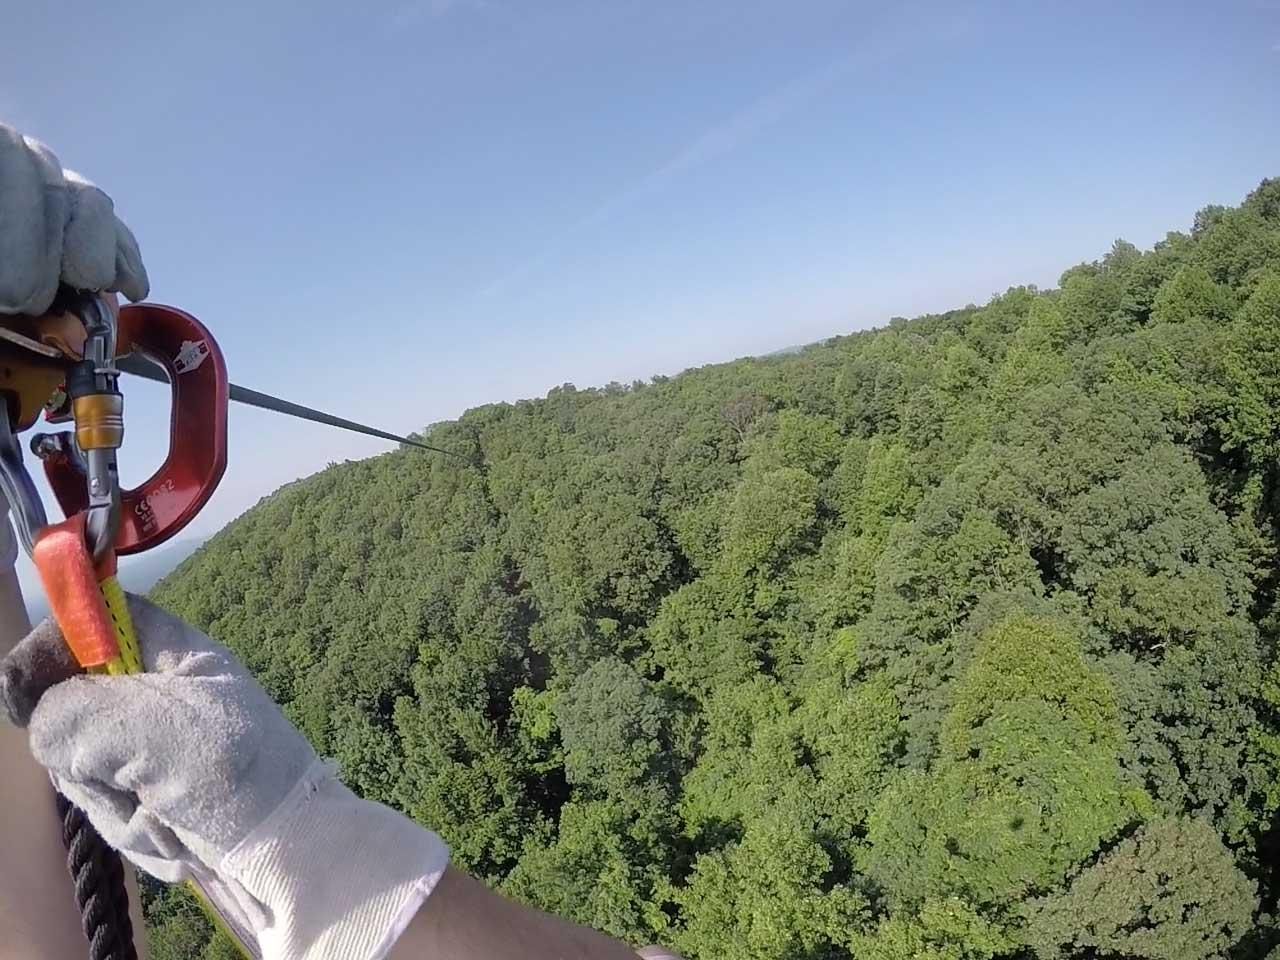 Zipline view at Amicalola State Park